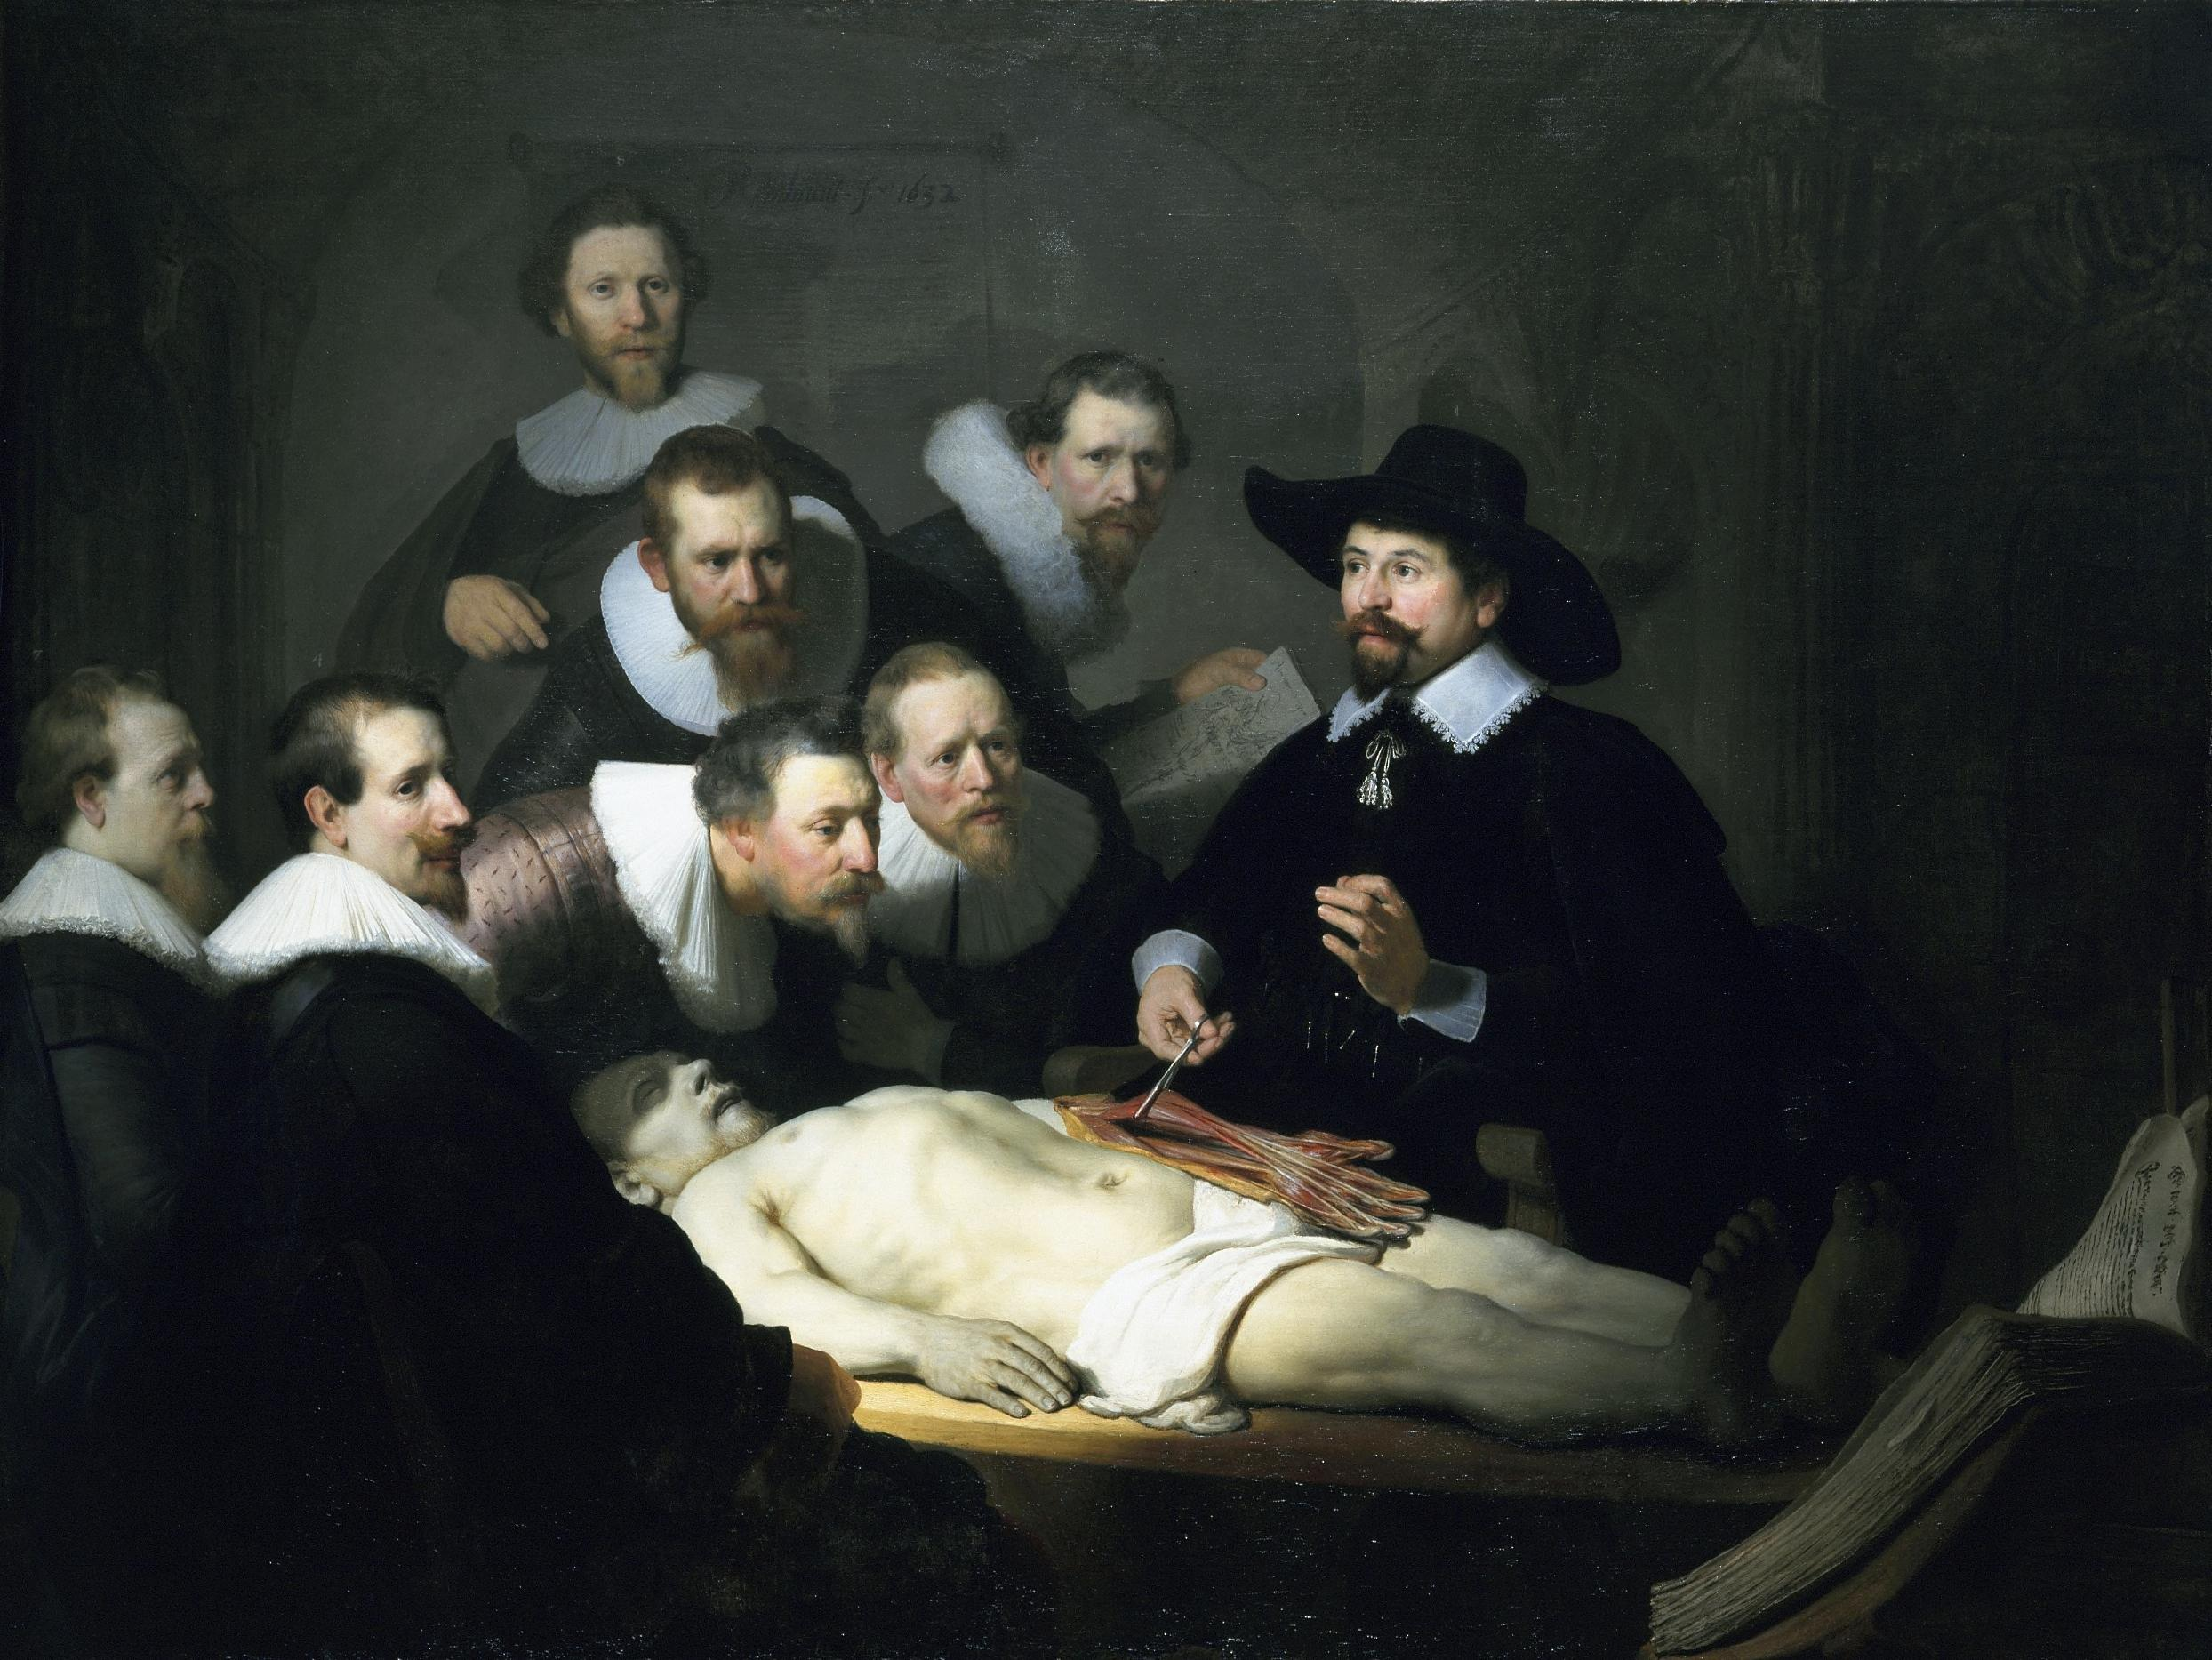 Rembrandt: The Anatomy Lesson of Dr. Nicolaes Tulp